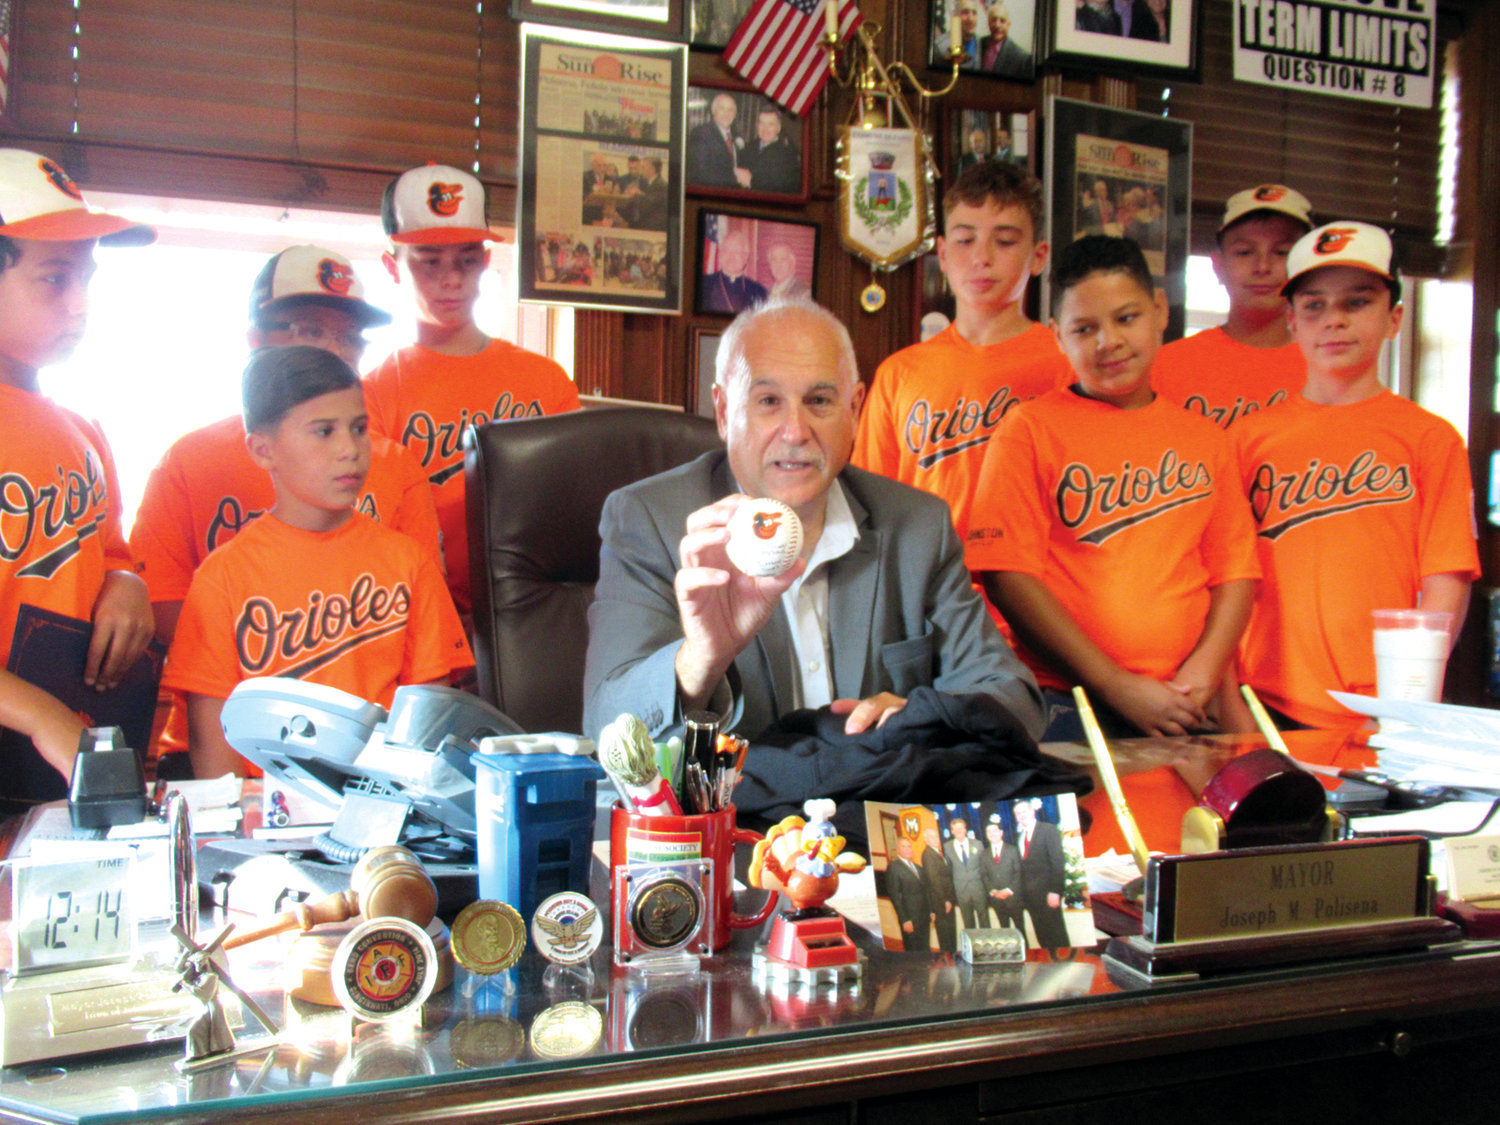 MIGHTY MOMENTO: Mayor Joseph Polisena holds the official game ball which was used during the 2019 Johnston Little League's Town Championship finale won by the Orioles for the fourth time in last nine seasons.